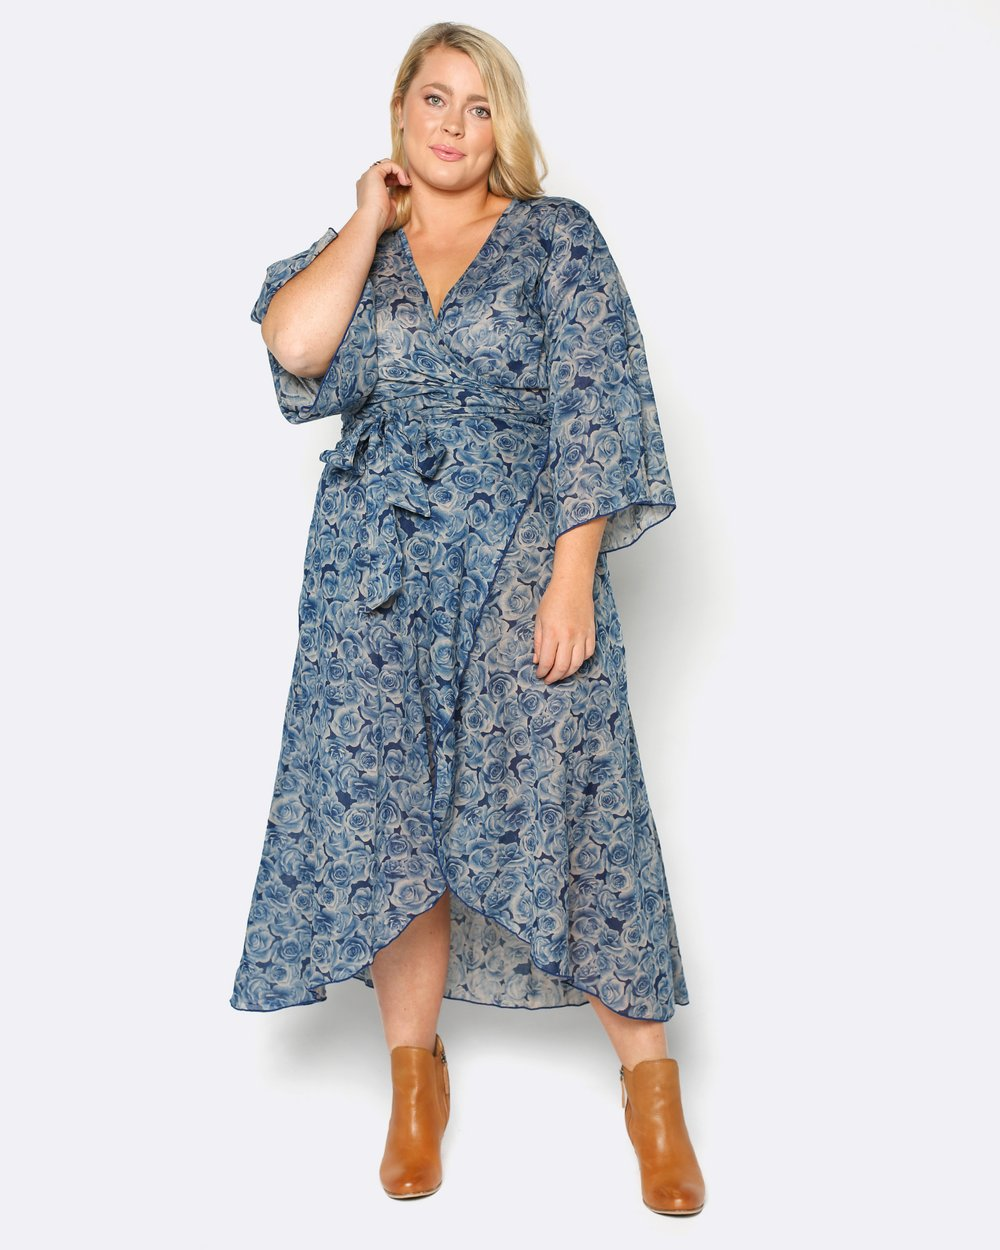 fb357a85a4a Spell The Gypsy Collective Winona Boho Maxi Dress In Ivy Revolve ...